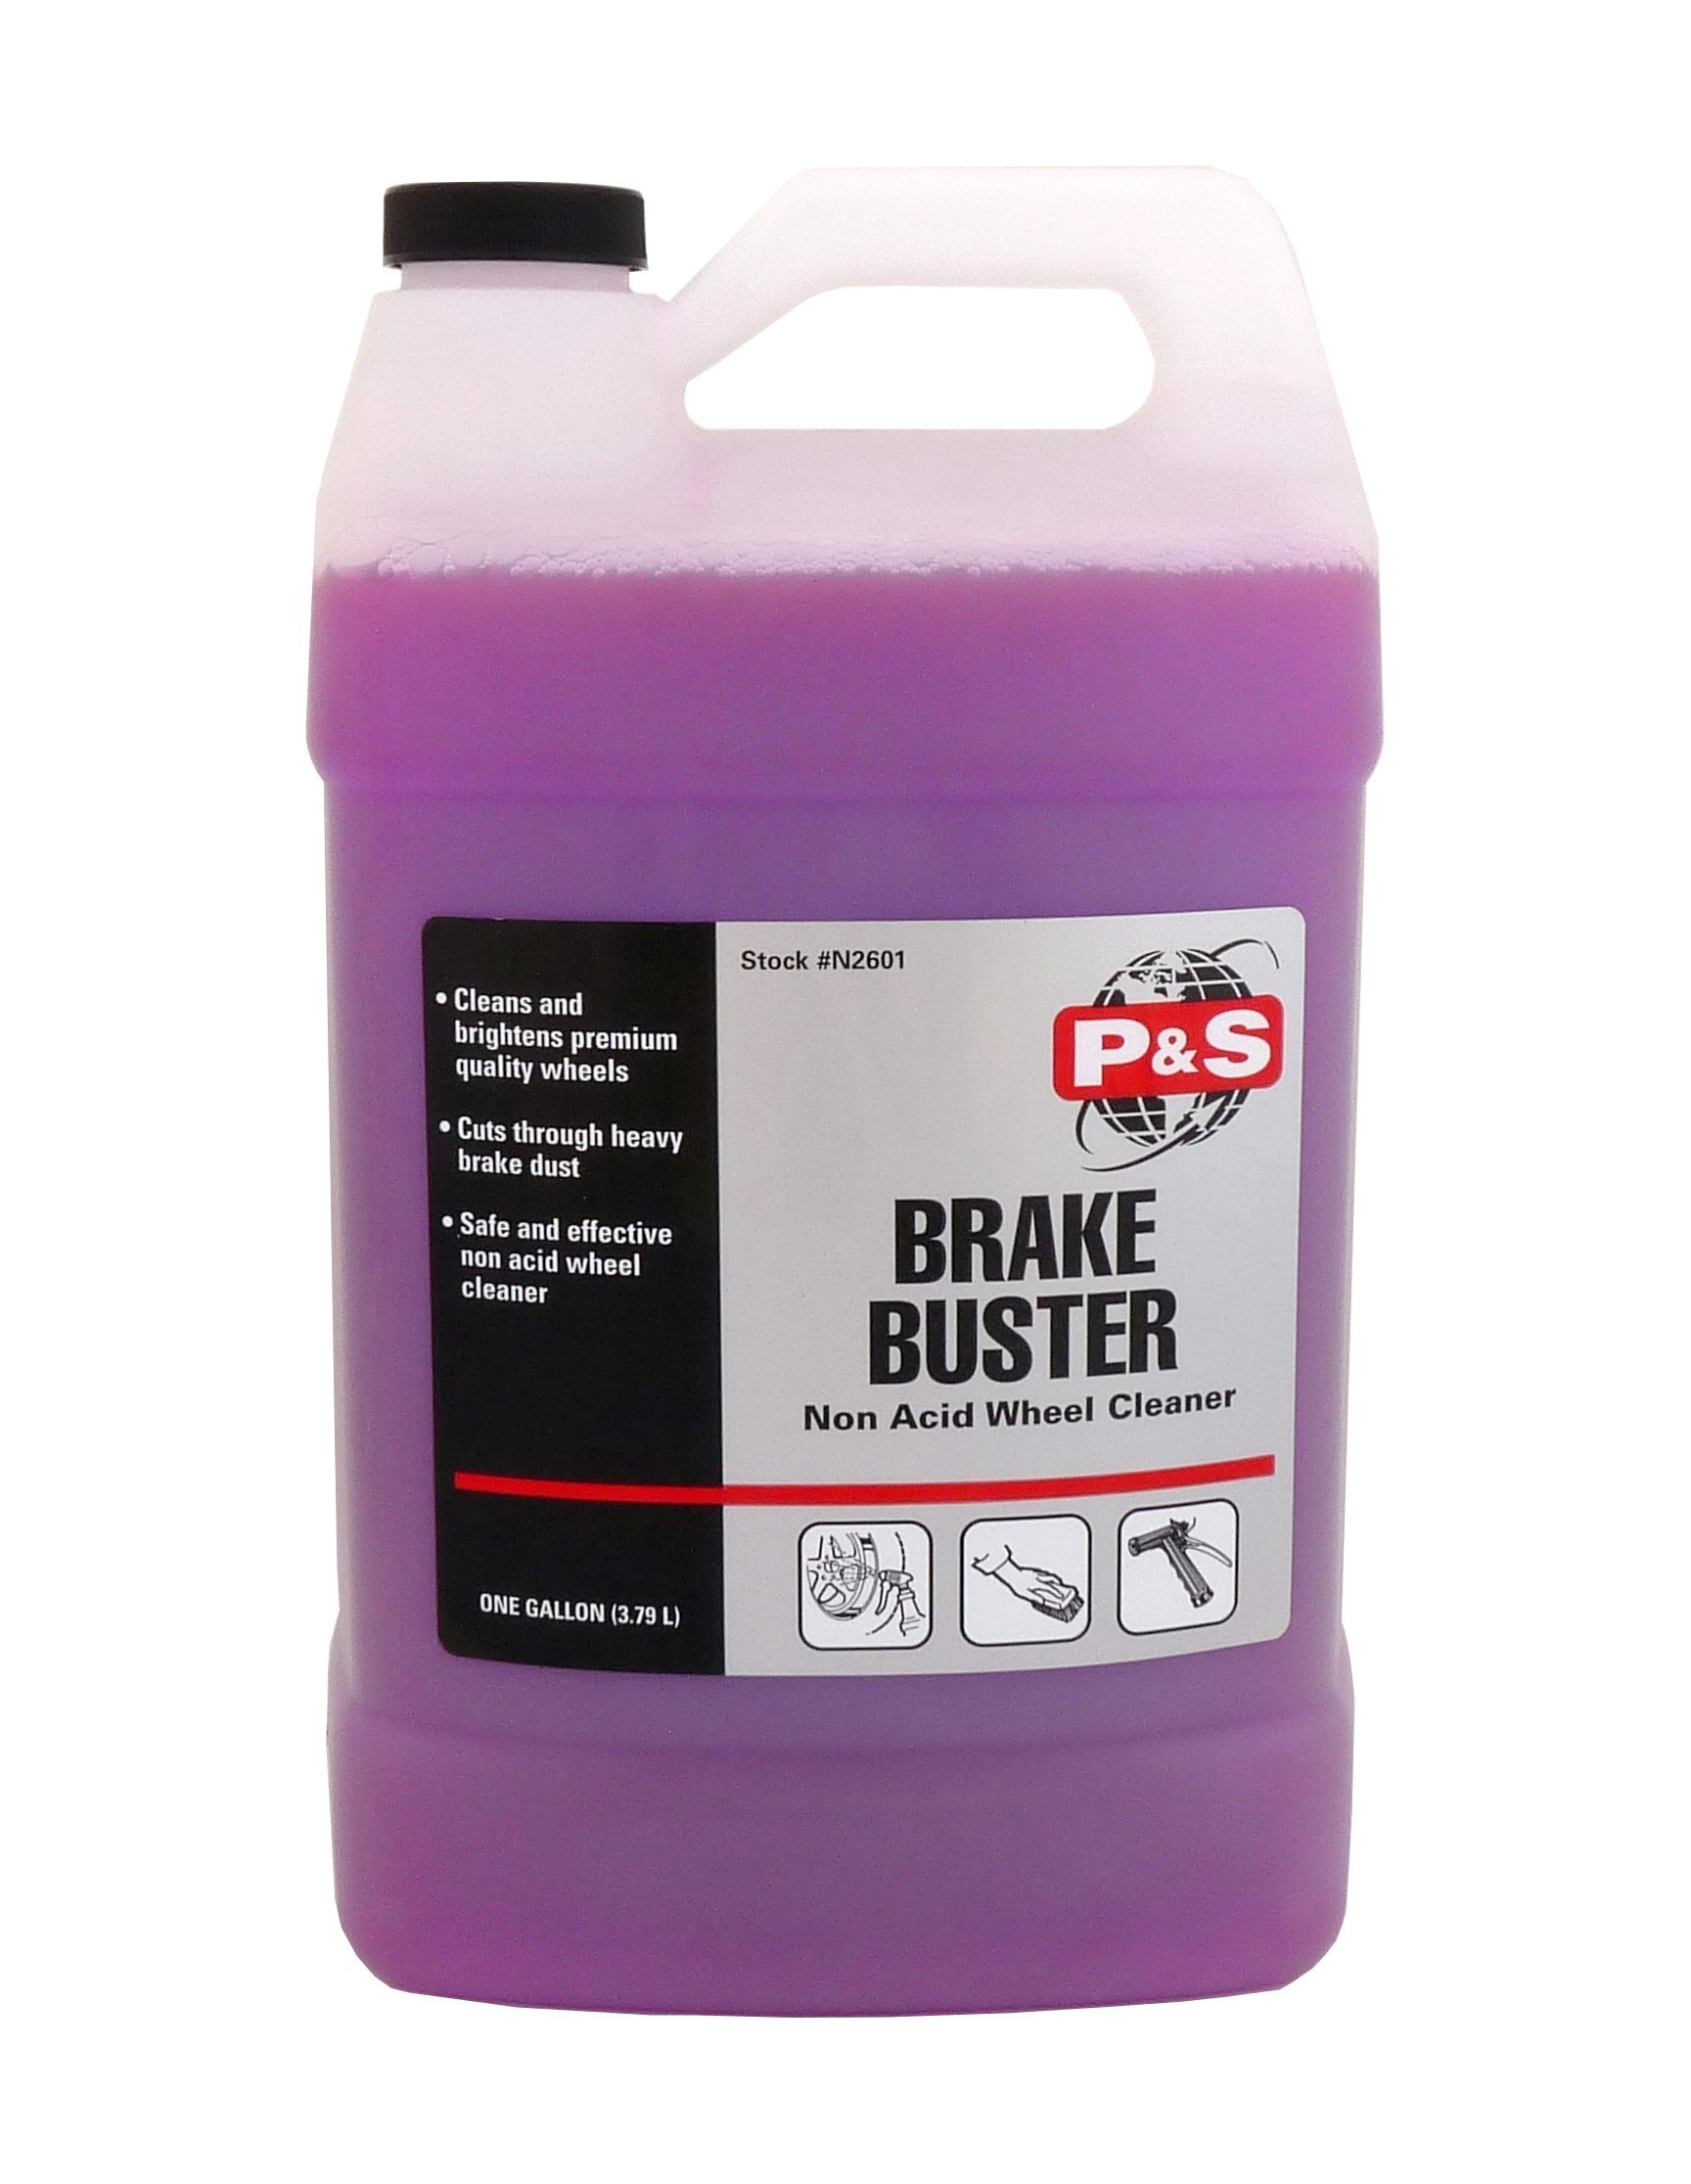 P&S Detailing Products RT40 - Brake Buster Non-Acid Wheel Cleaner ( 1 Gallon )